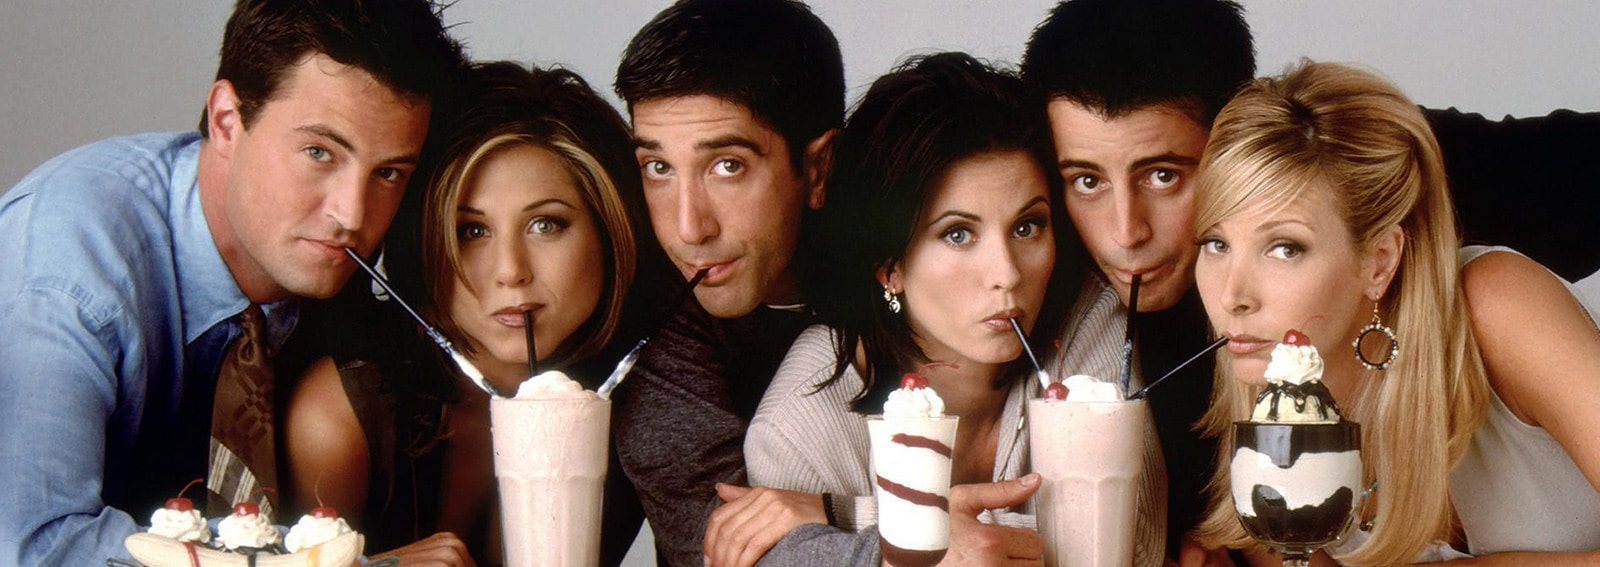 cover cast di friends ieri oggi desktop